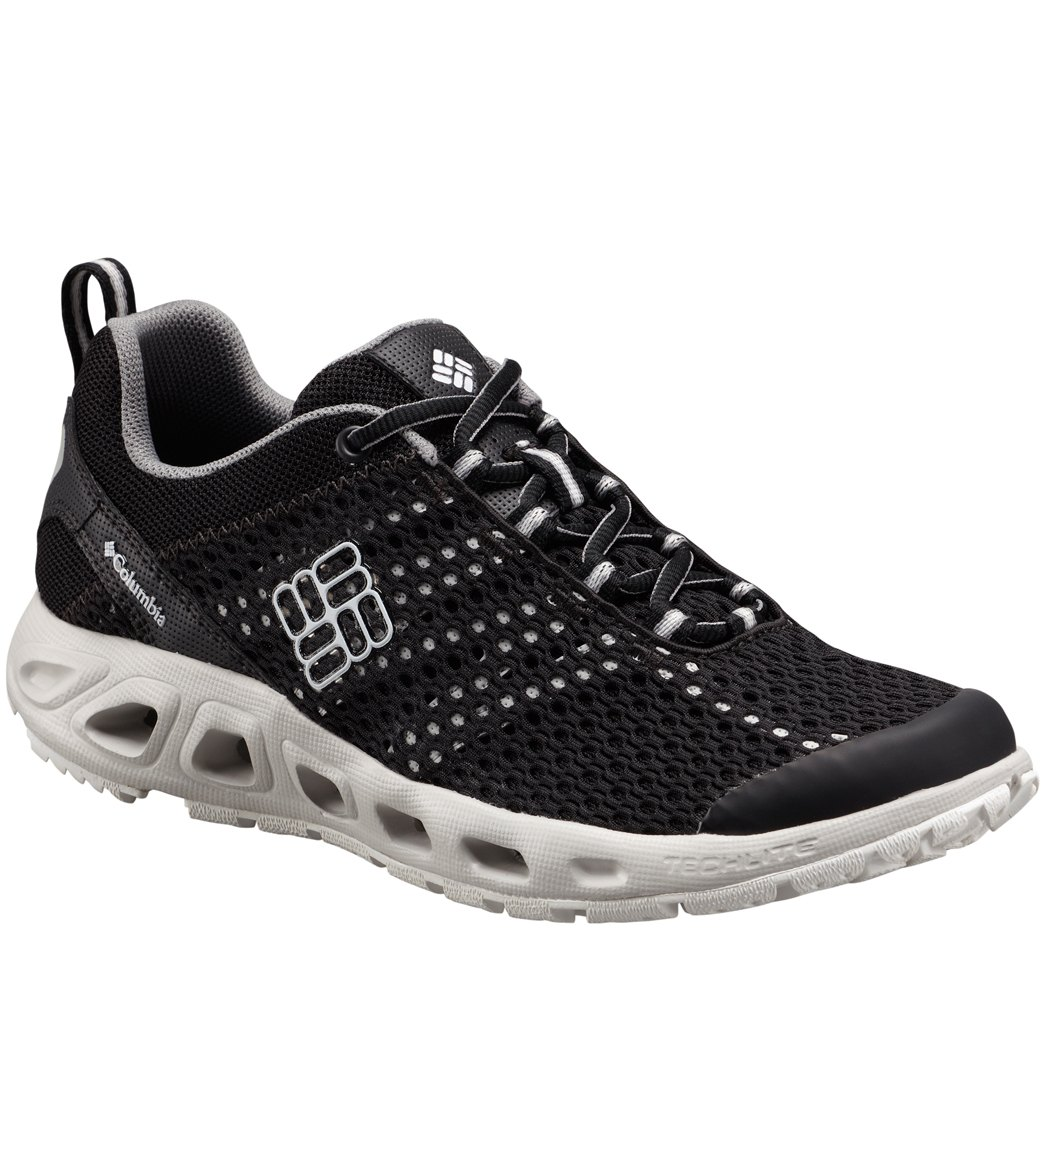 bcfb93d3a8f1 ... Columbia Men s Drainmaker III Water Shoe. Share